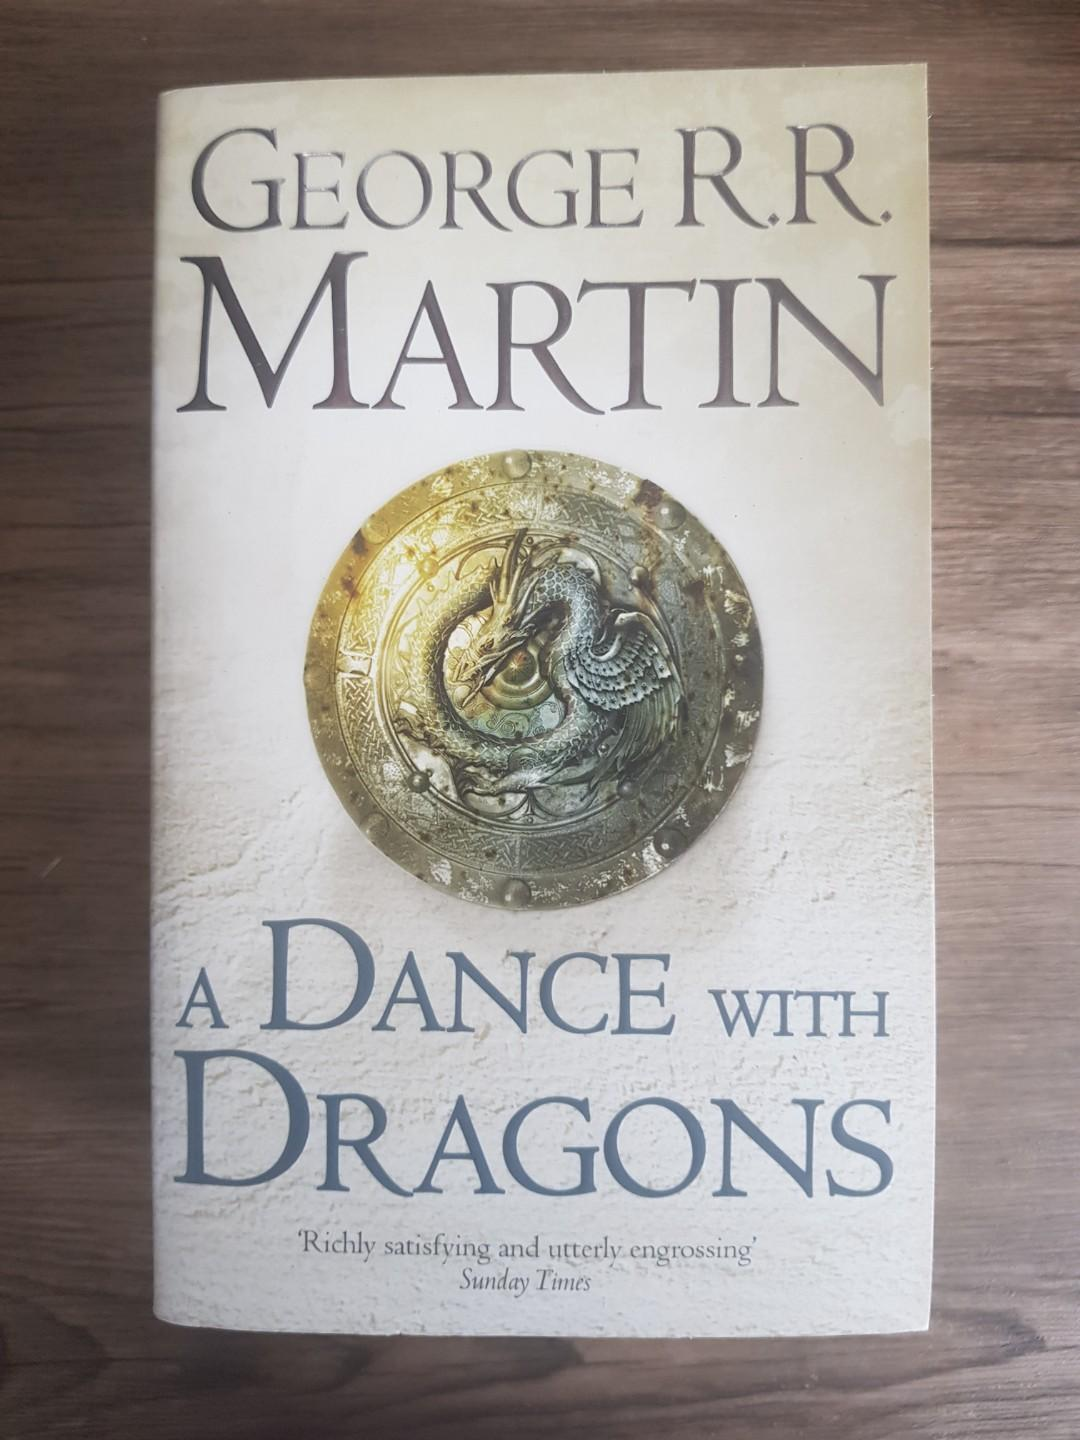 A Dance with Dragons by George RR Martin (Game of Thrones)